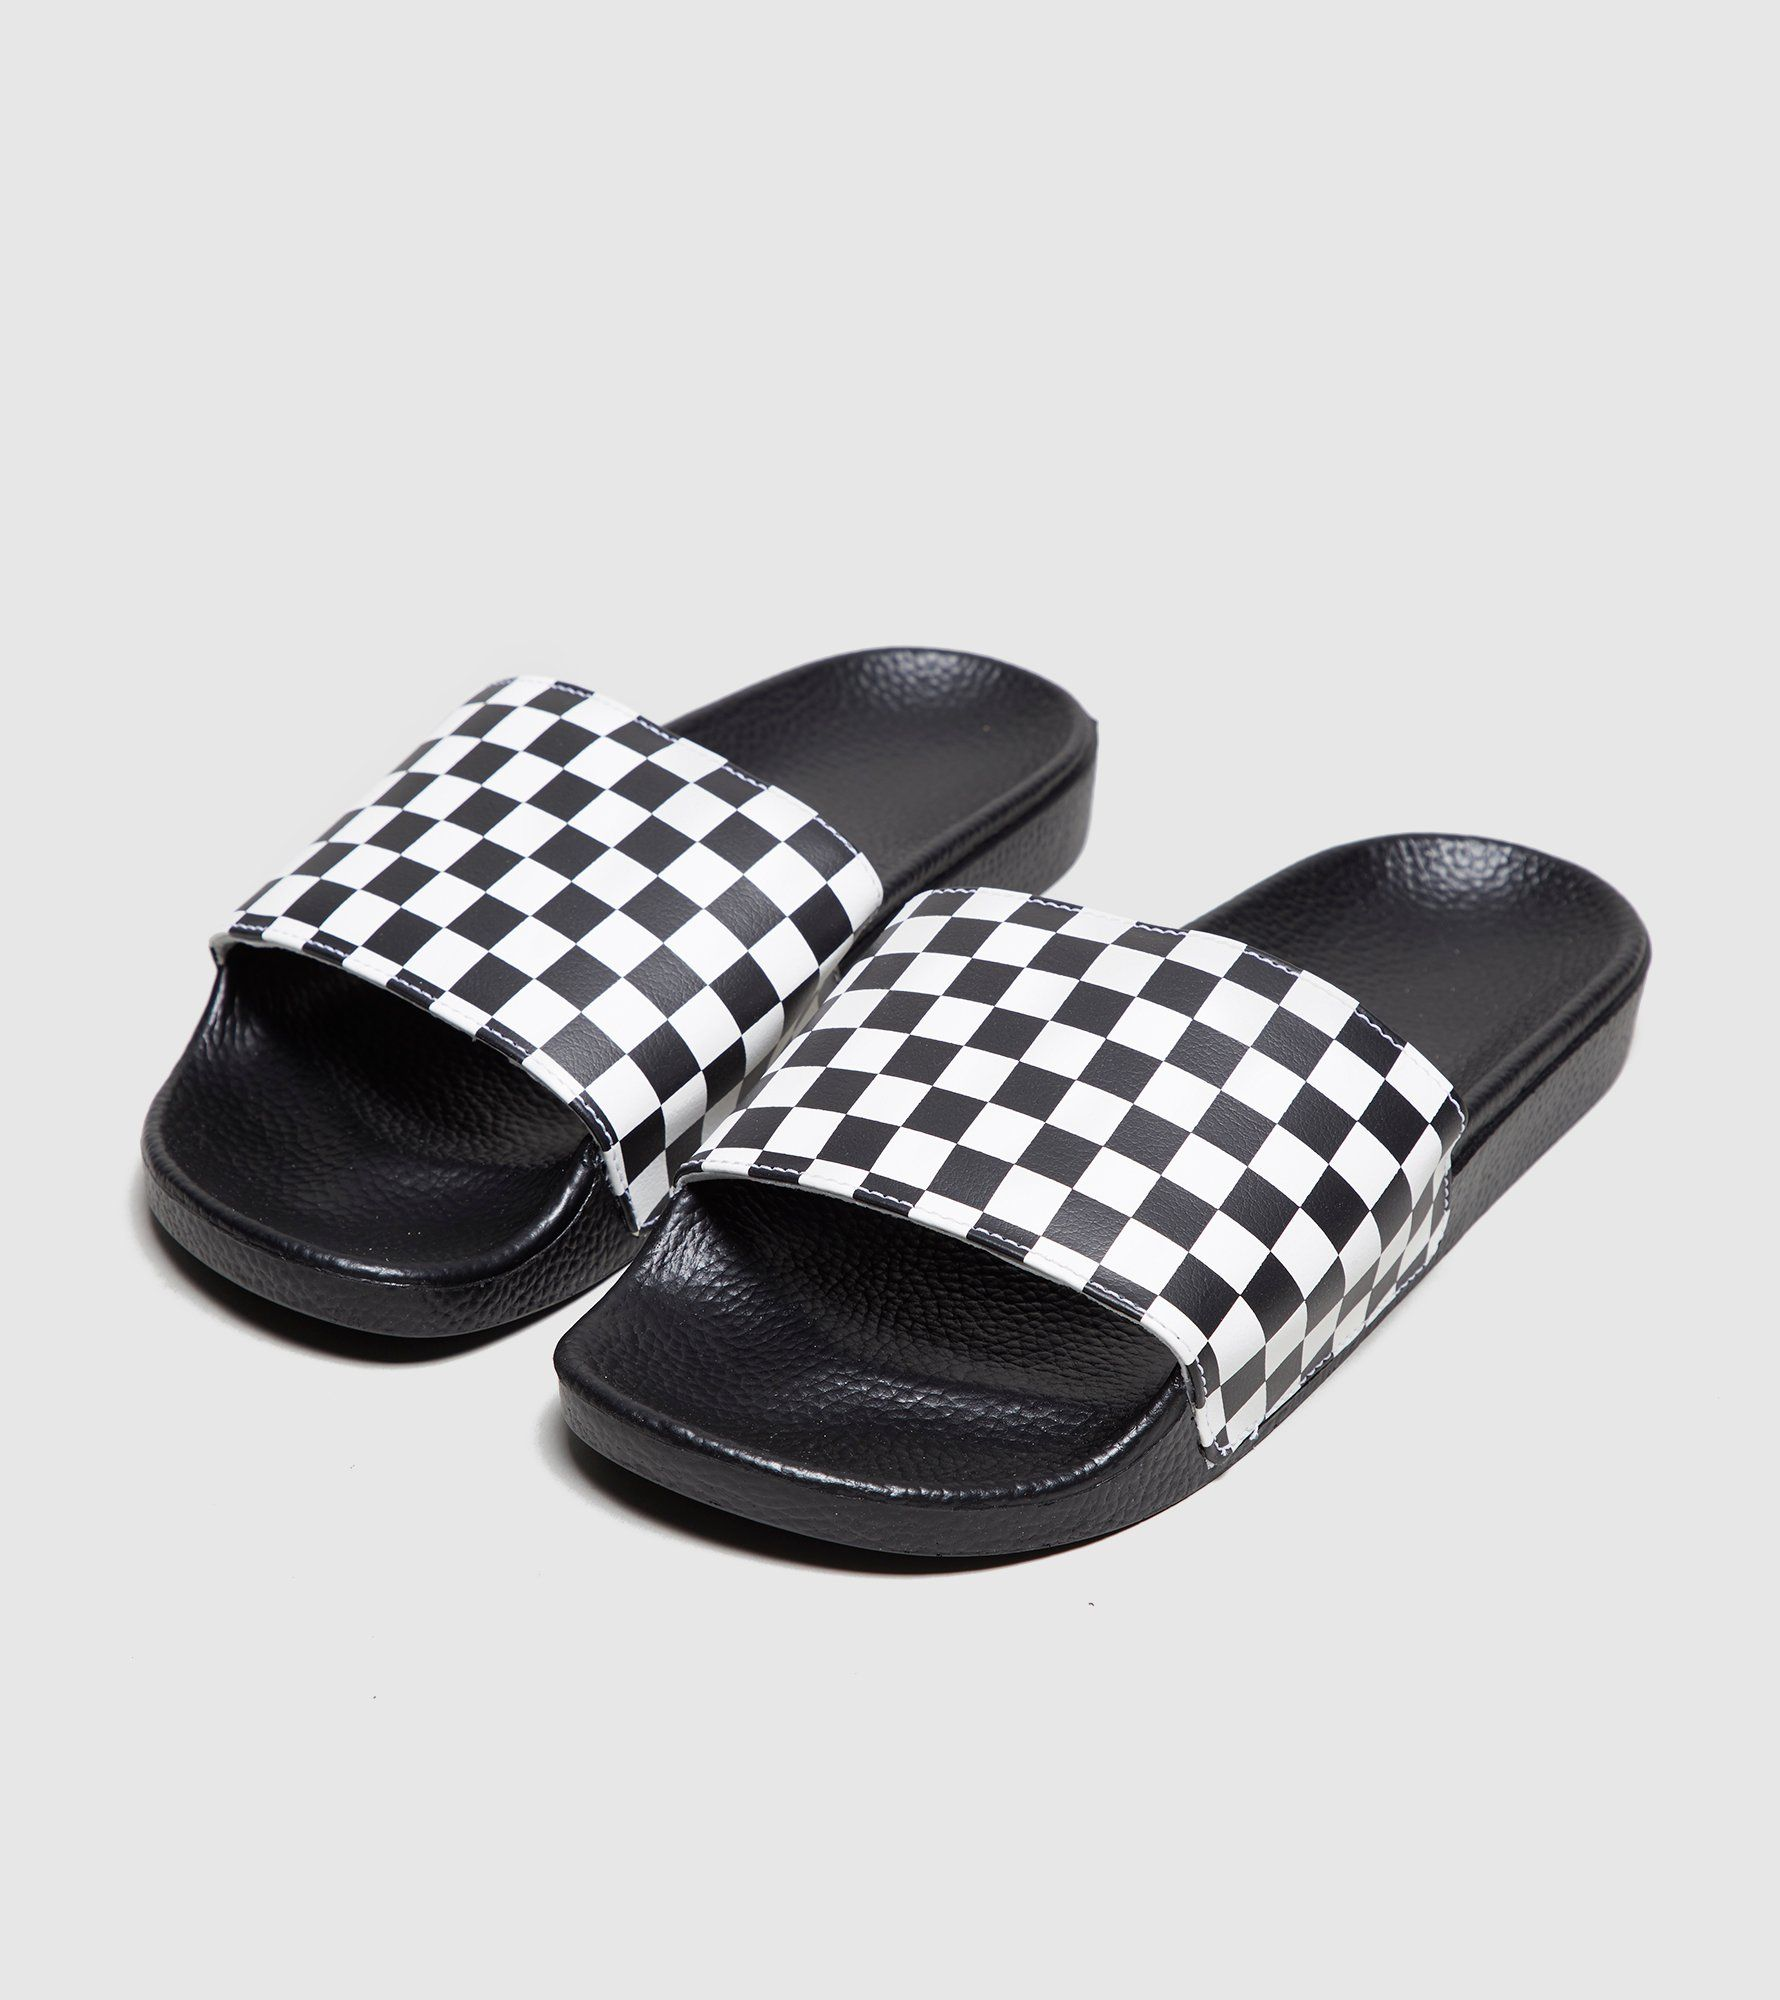 Vans Checkerboard Slide-On Sandaler